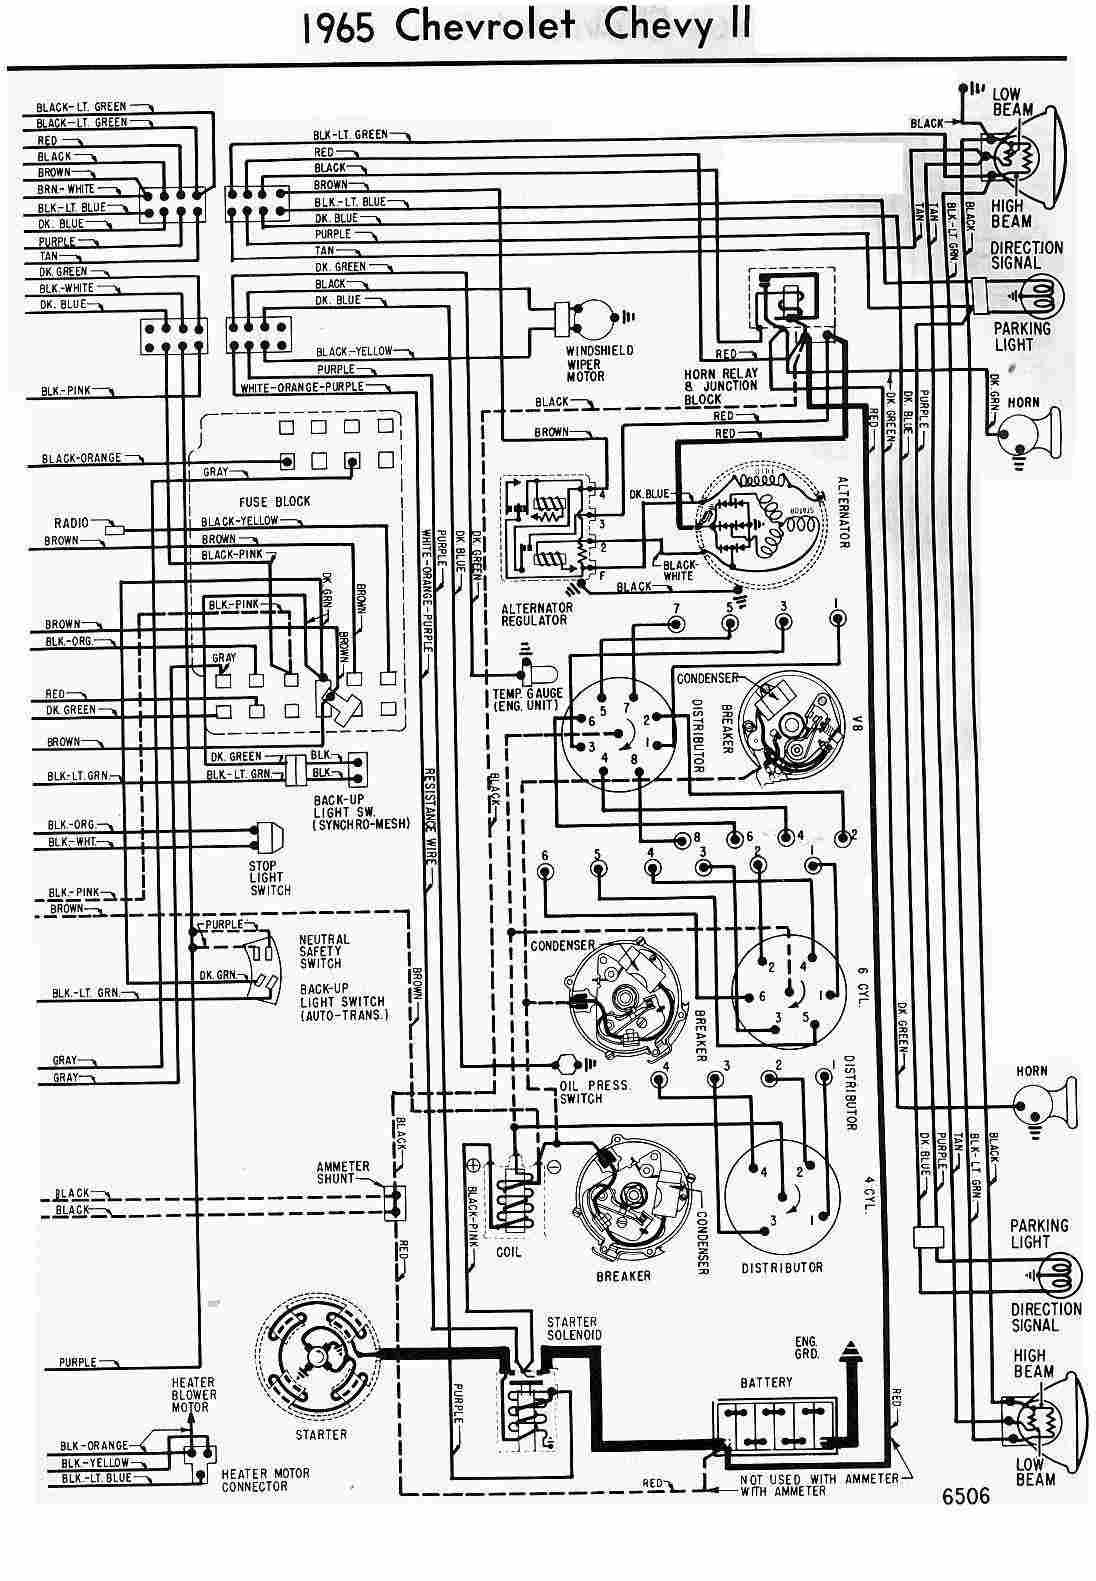 Wiring Diagram For 1966 Chevrolet Corvair 1965 Cadillac Chevy Wire Rh Maerkang Org 1967 Mustang Chevelle